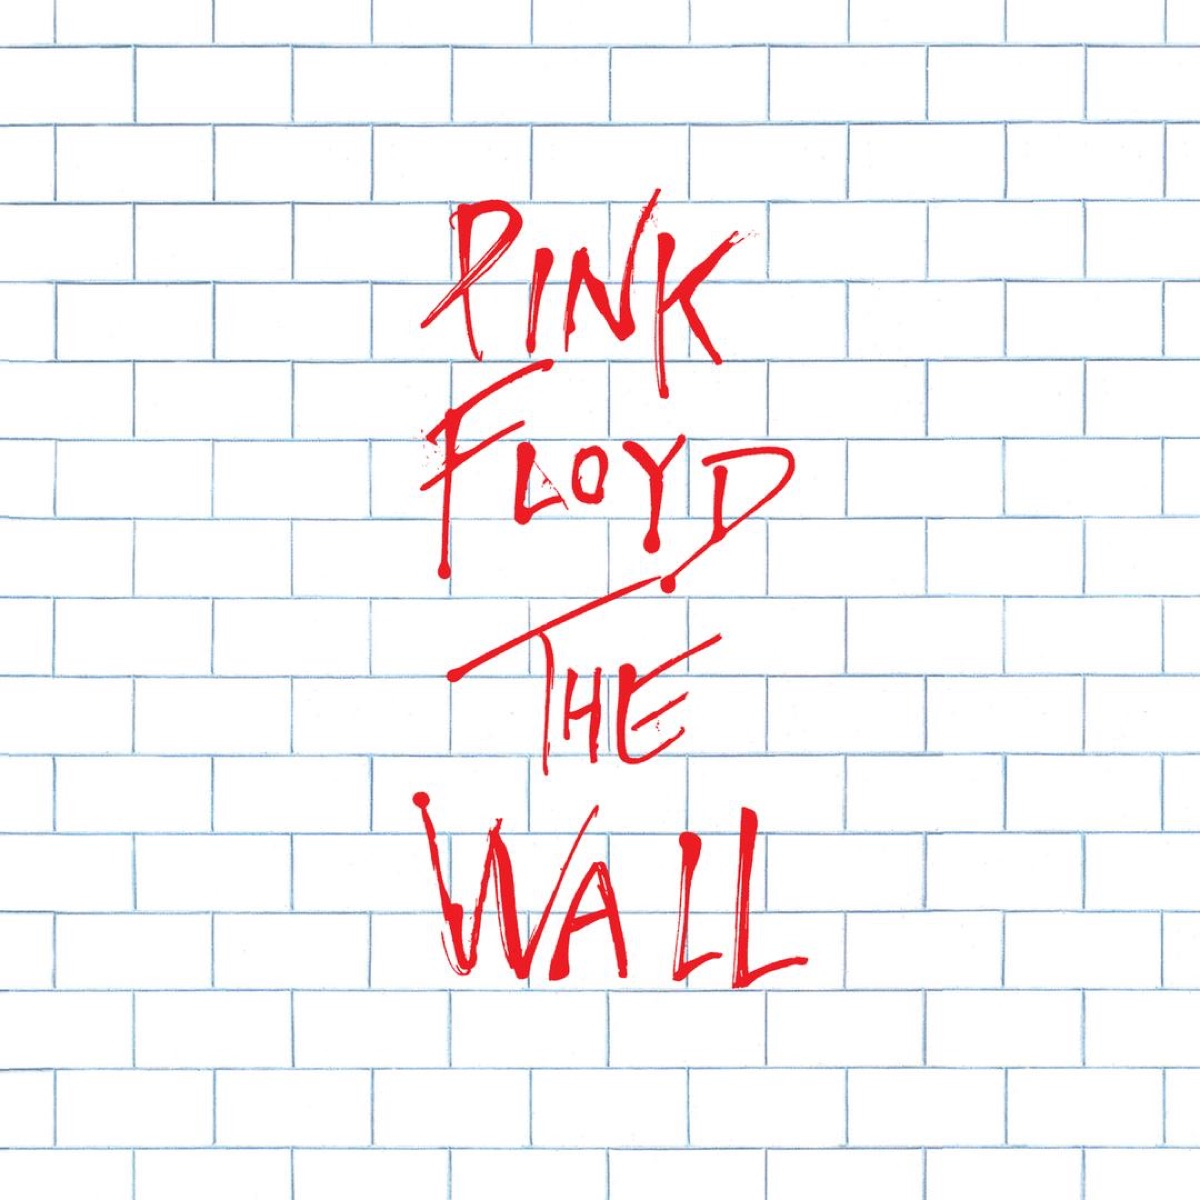 The Wall album by Pink Floyd featuring Comfortably Numb